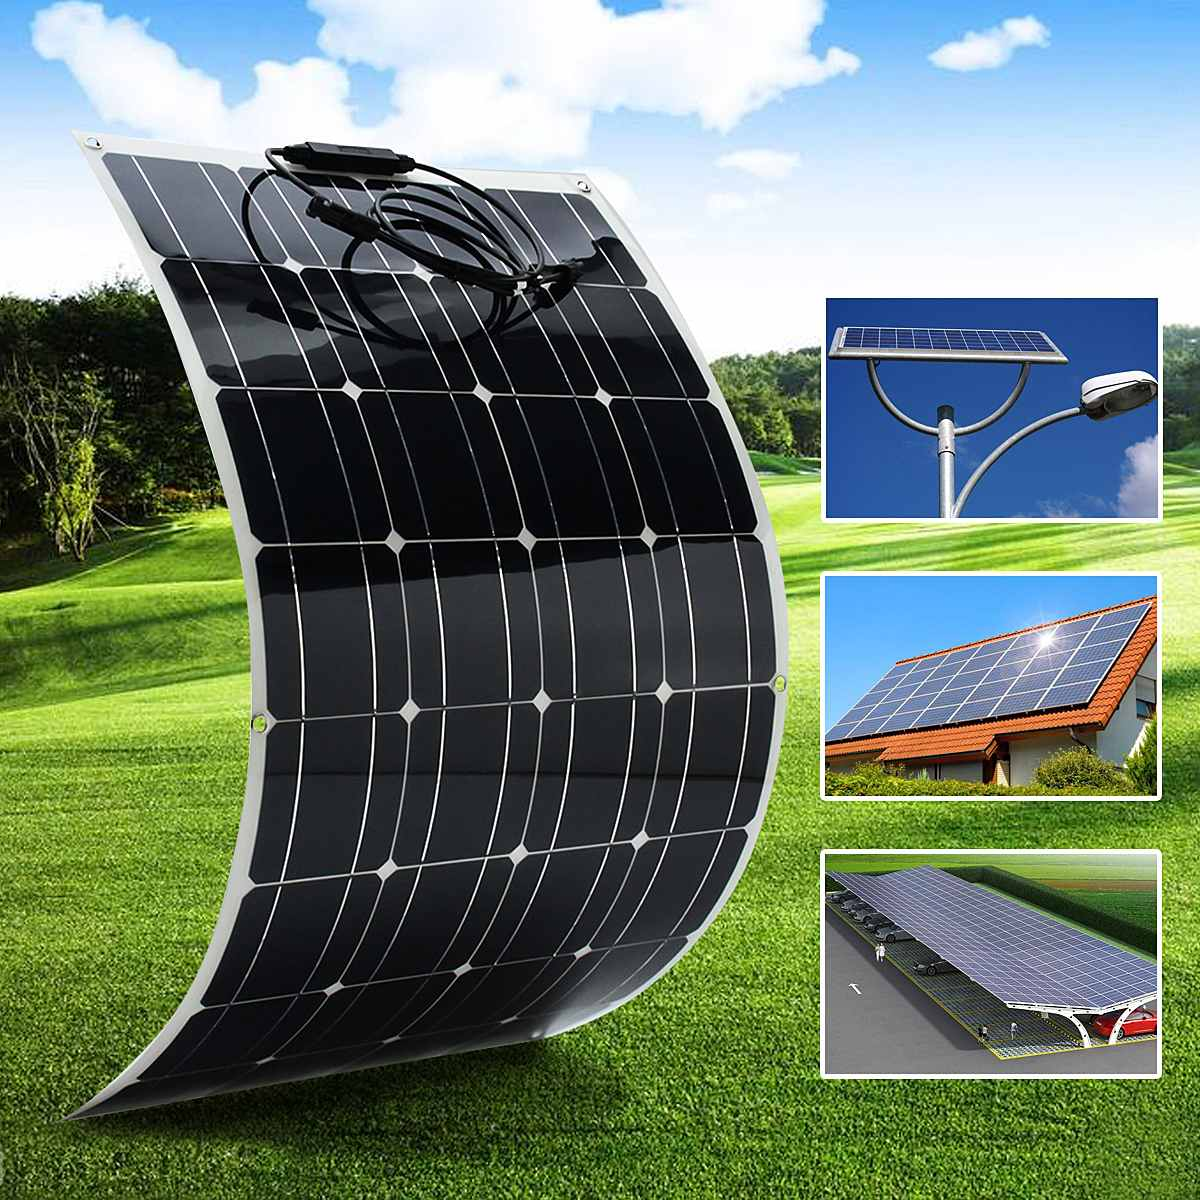 12V 100W Flexible Solar Panel Plate Solar Charger For Car Battery 12V Phone Battery Monocrystalline Cells 18V US AU UK Stock гарнитура defender warhead hn g130 черный 64103